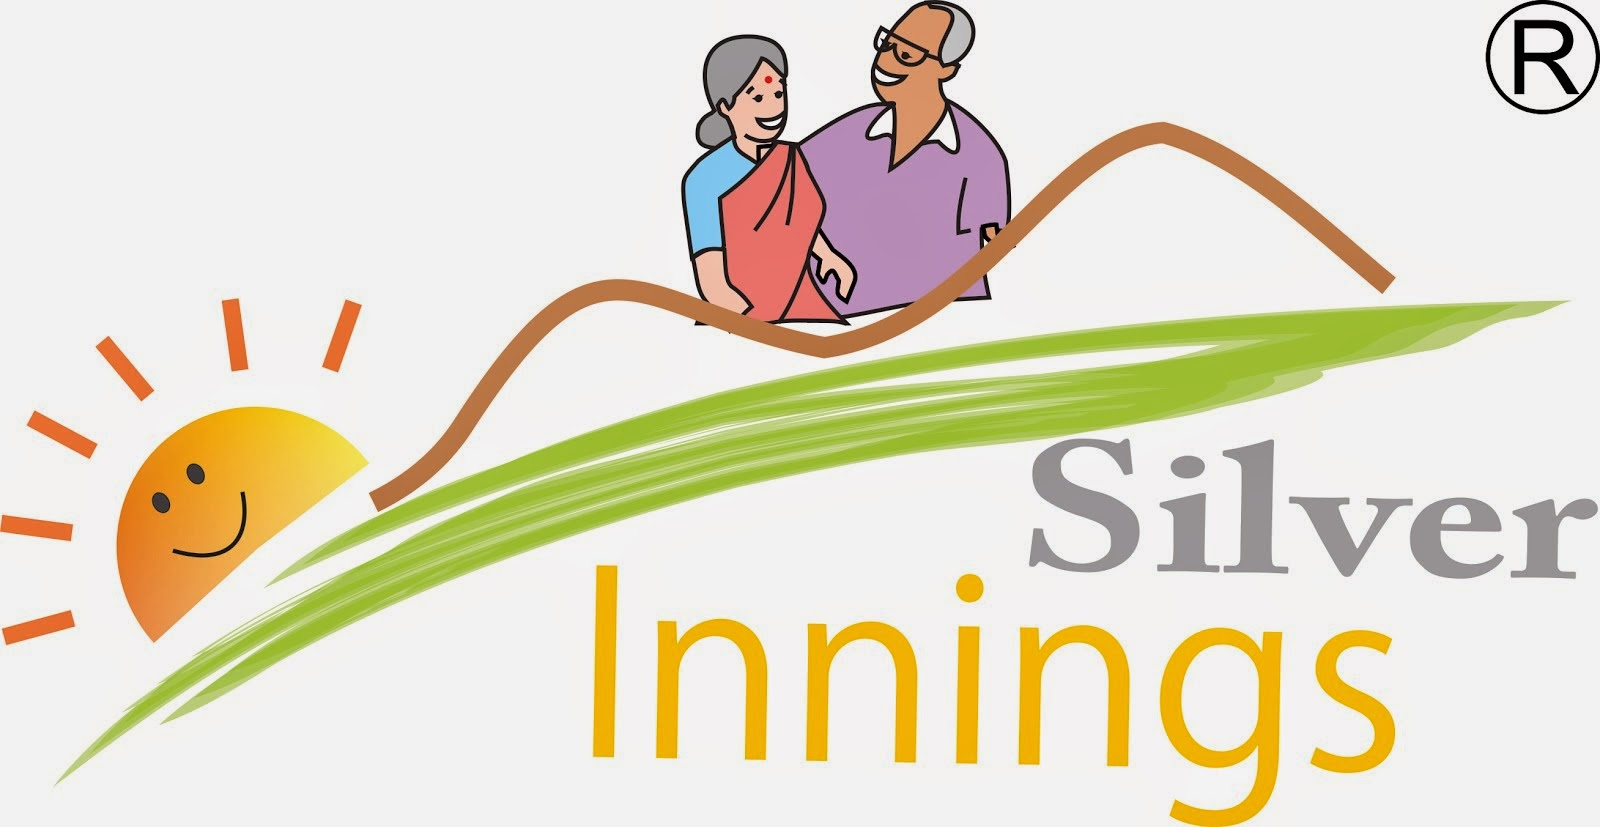 silver innings blog for senior citizens and their family 4th silver innings